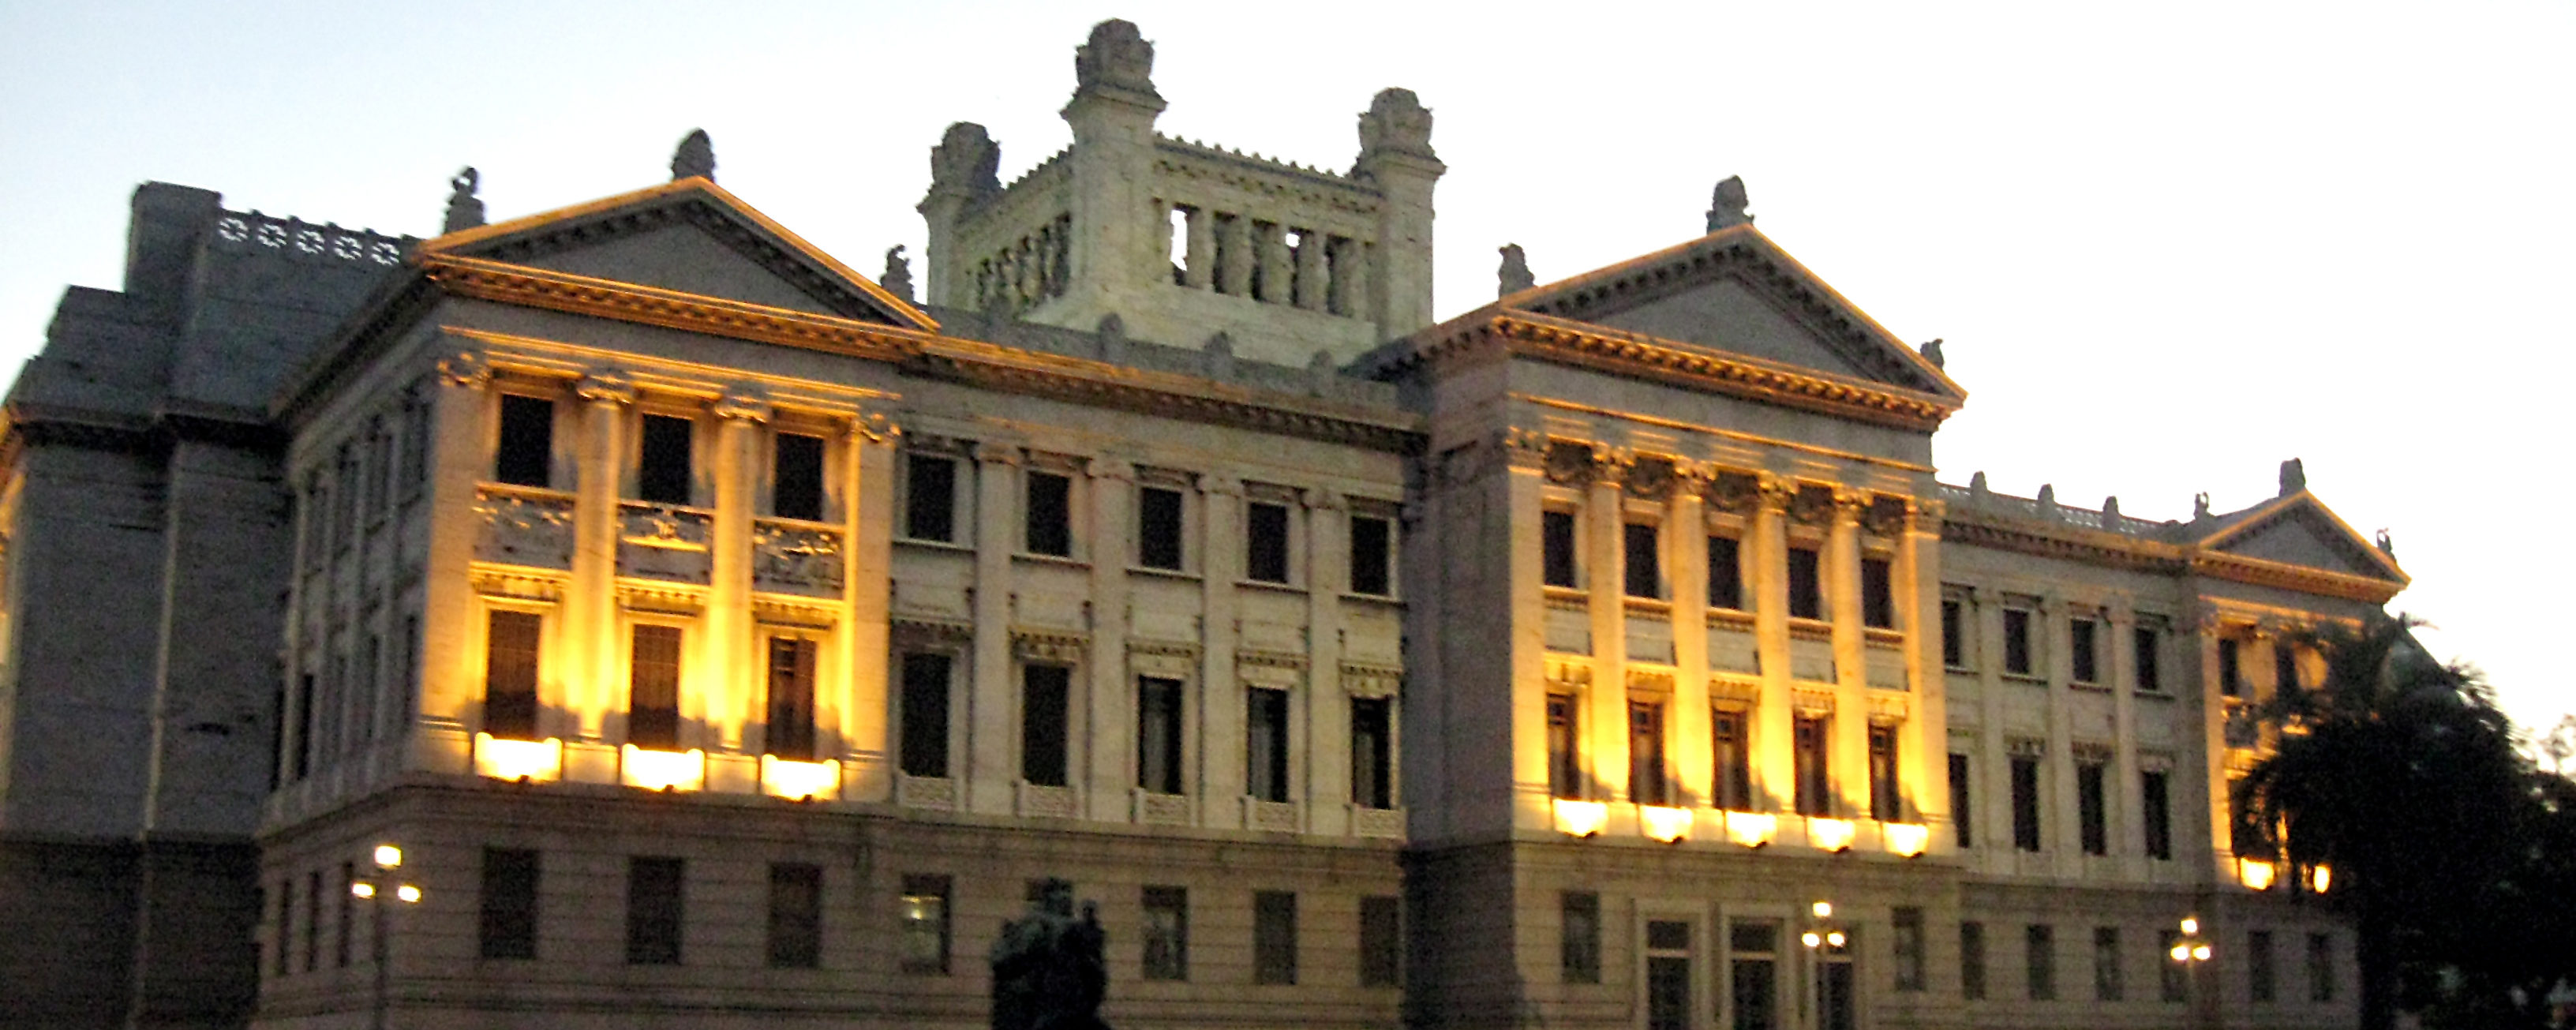 New Bourne Film Just Exterior Shots of Government Buildings